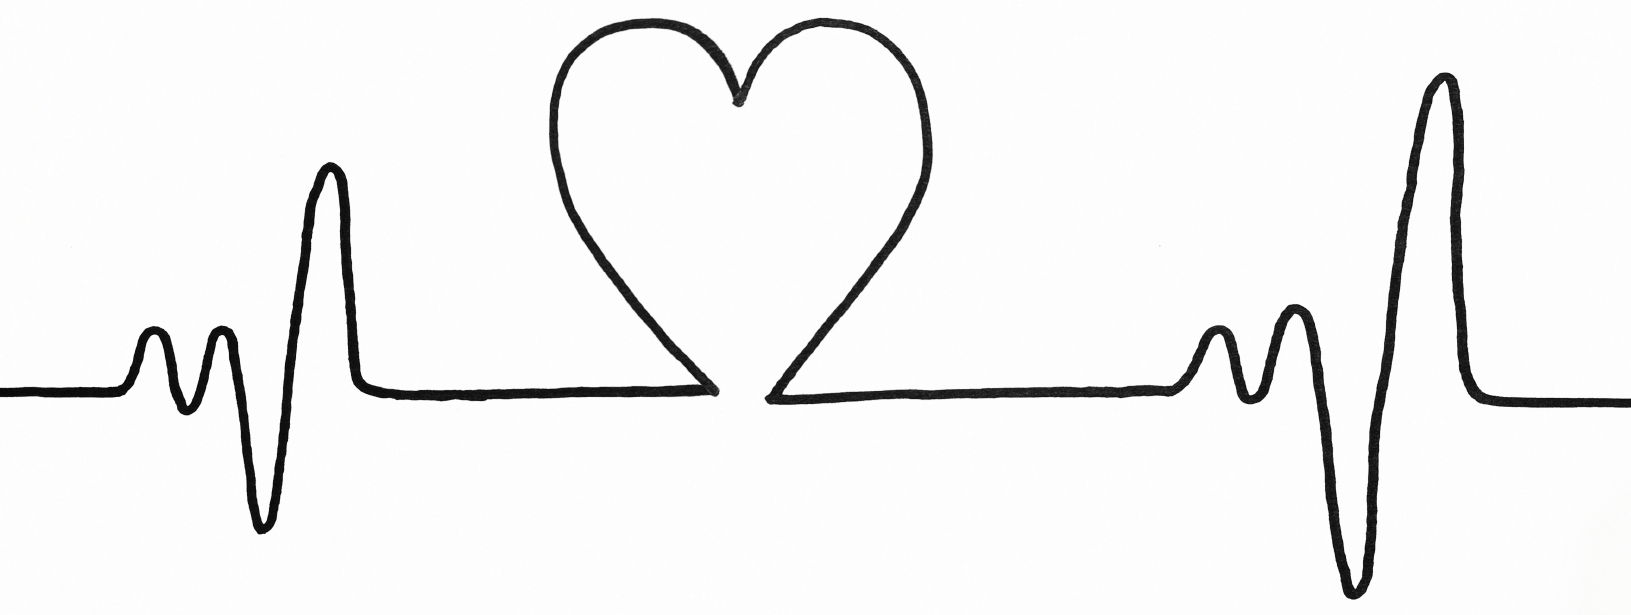 Heart rate clipart black and white.